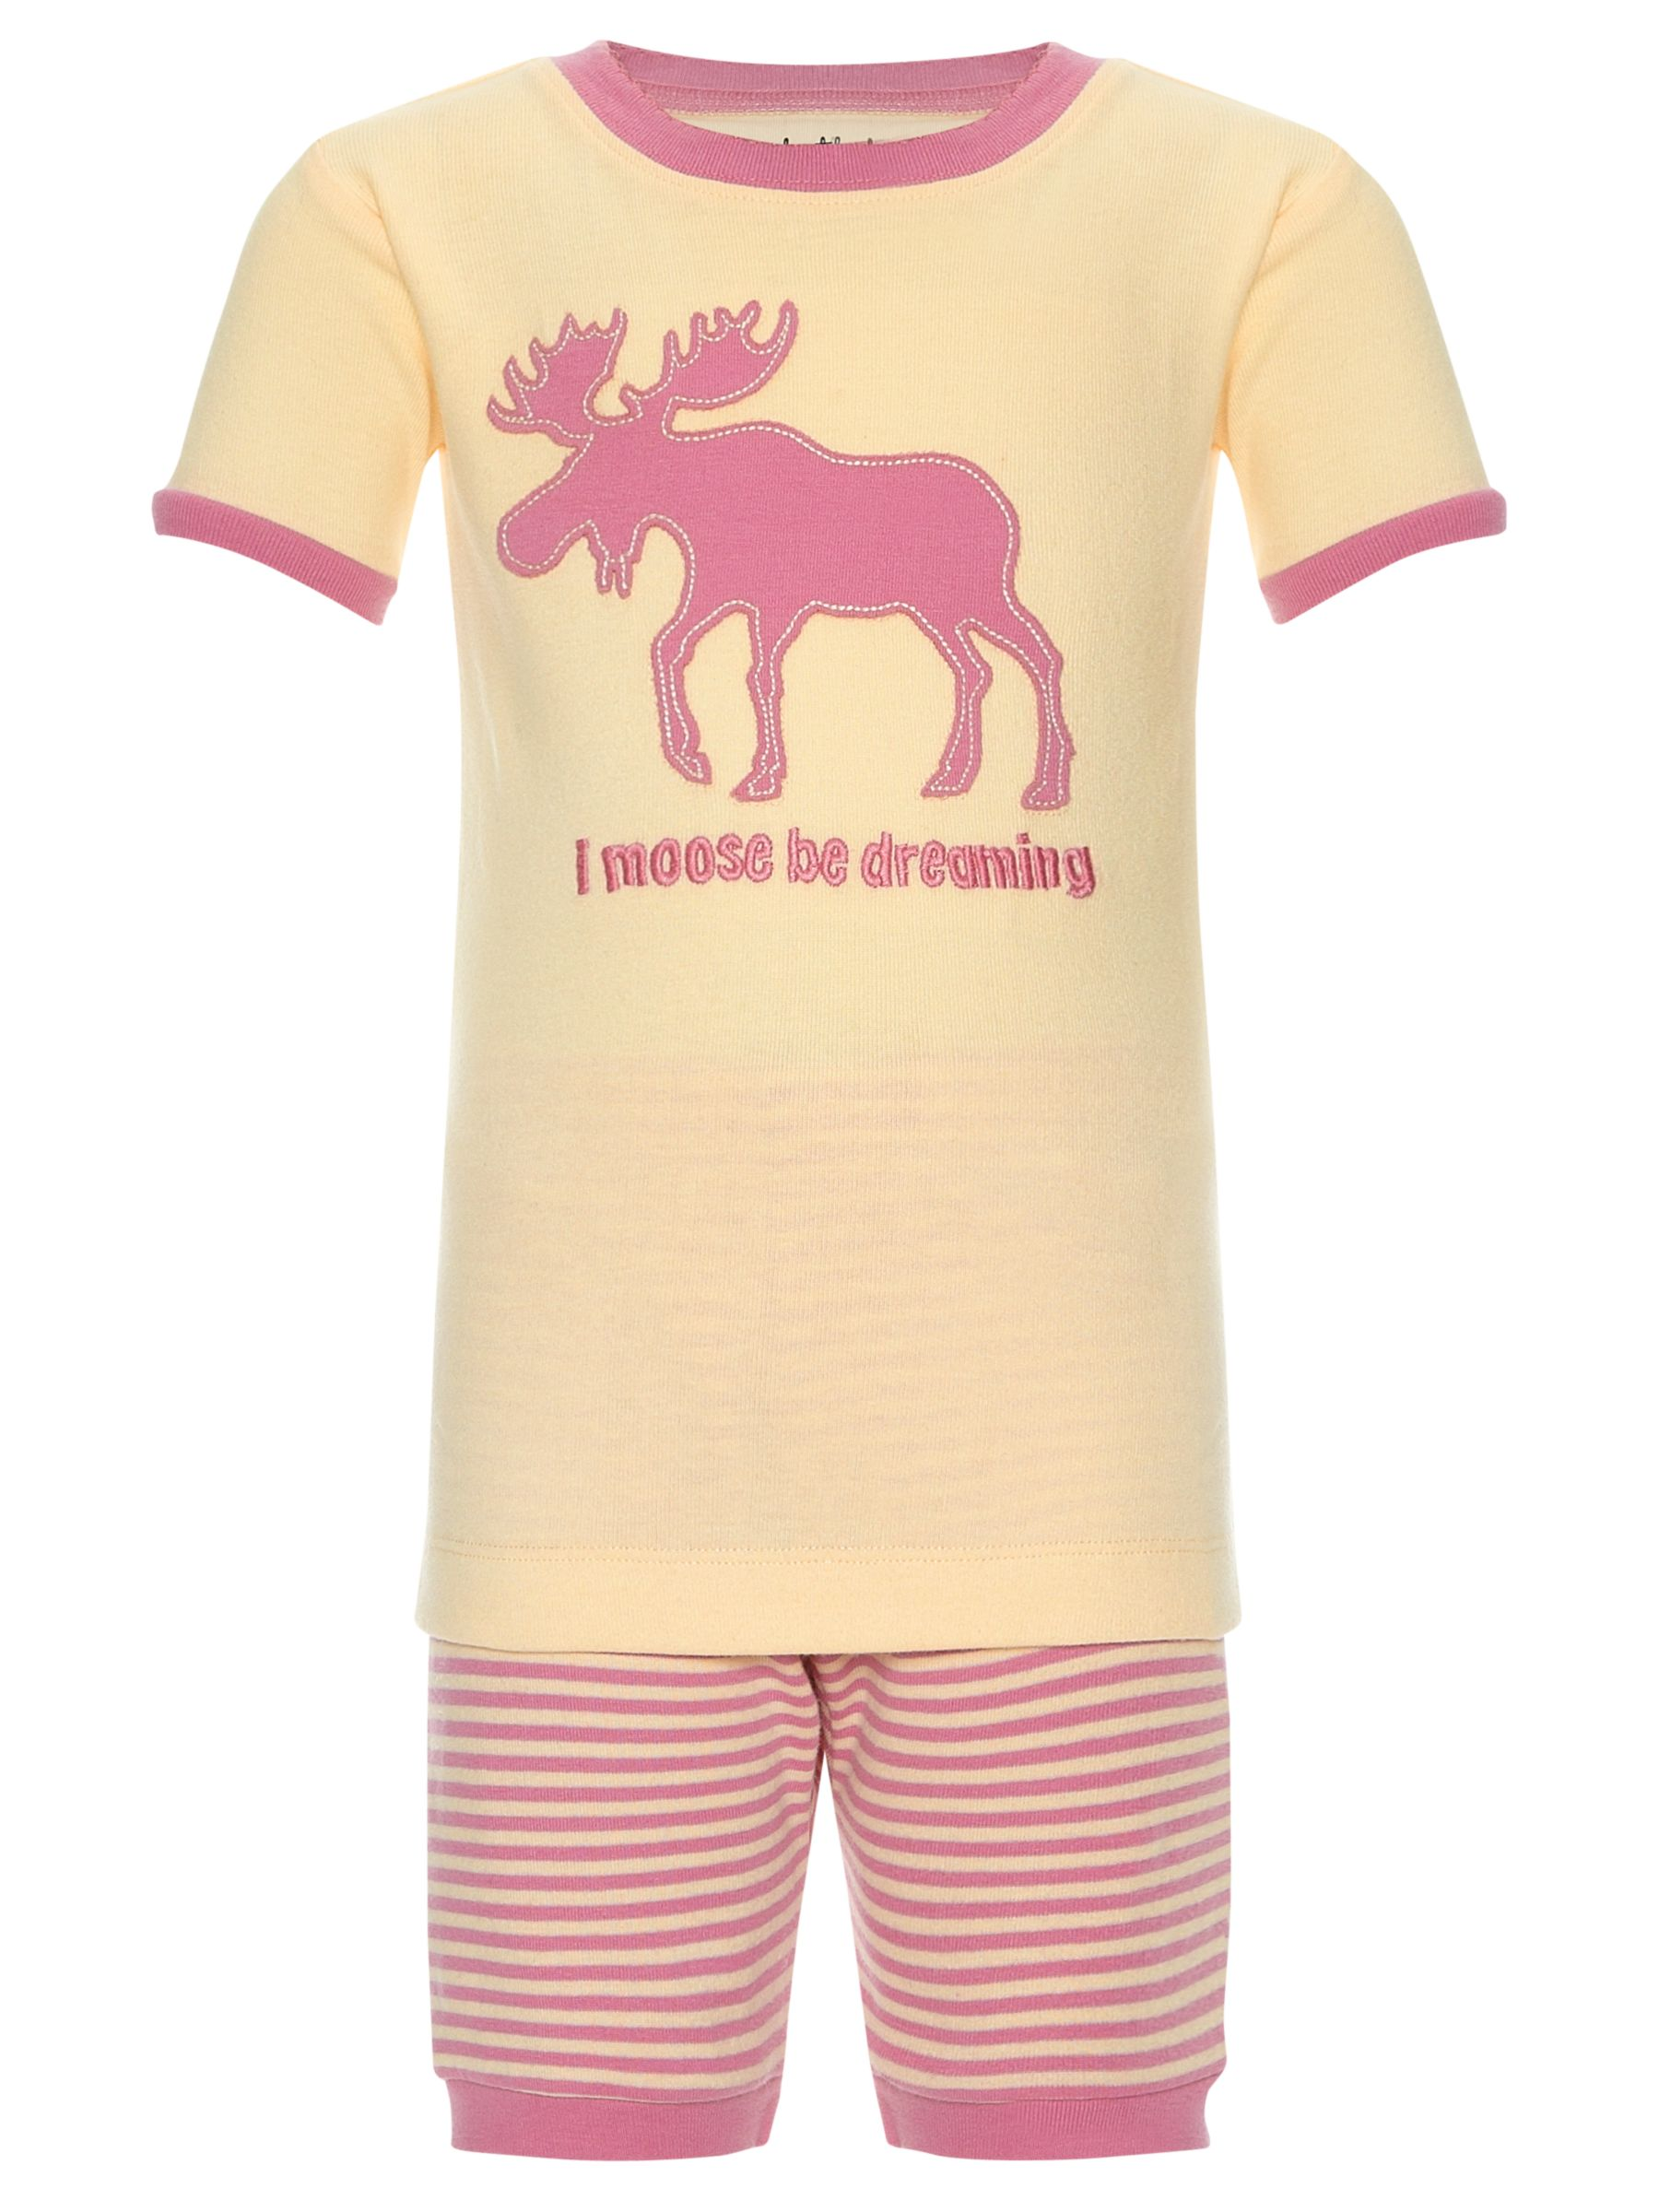 Hatley Moose Shortie Pyjamas, Cream/Pink